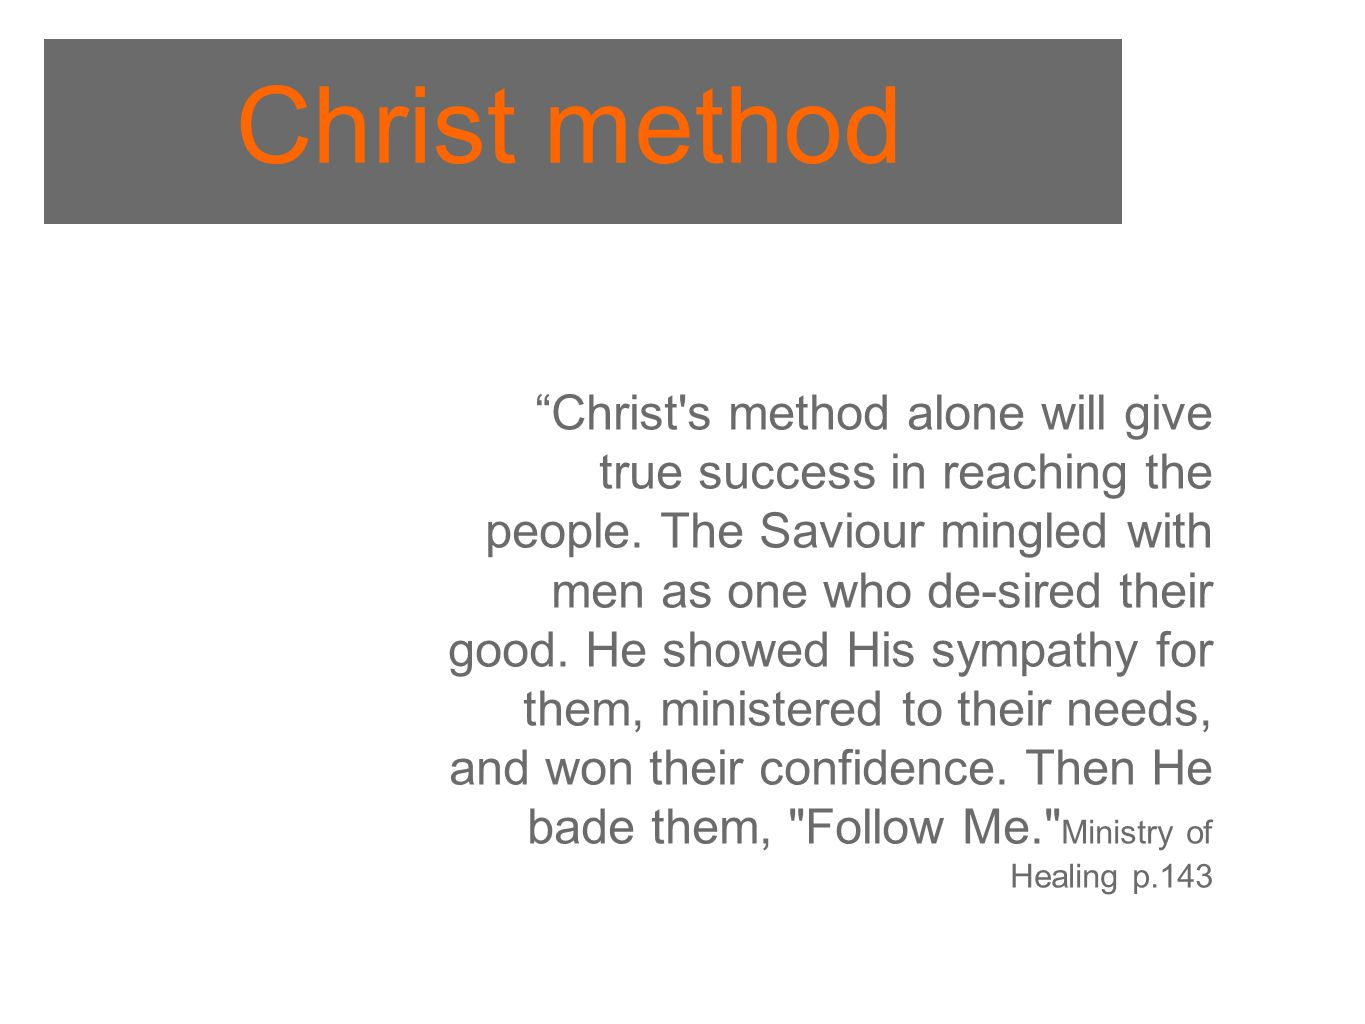 Christ method Christ s method alone will give true success in reaching the people.